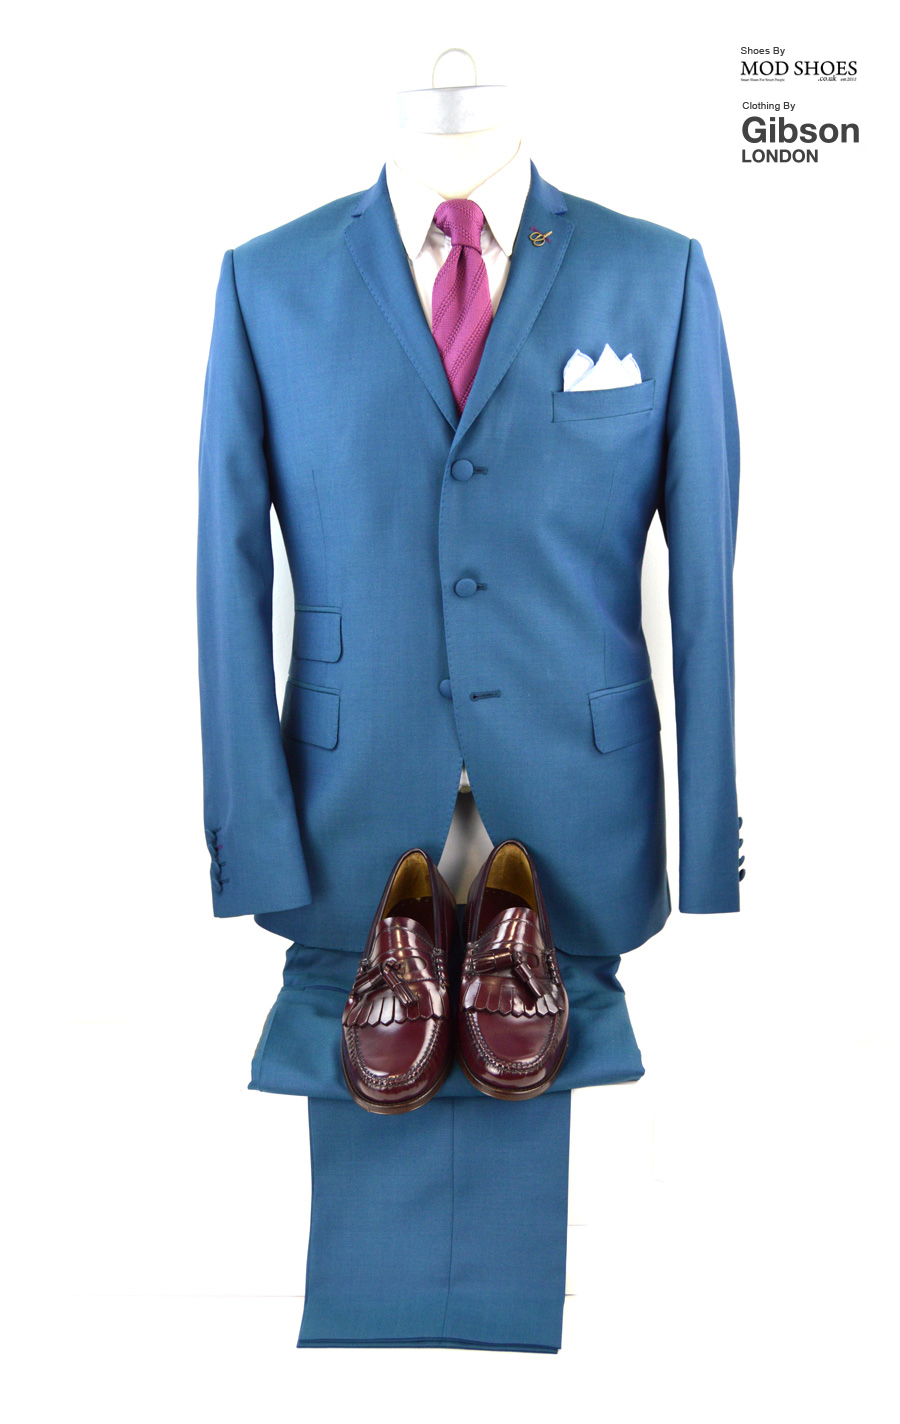 modshoes-with-gibson-clothing-suit-01